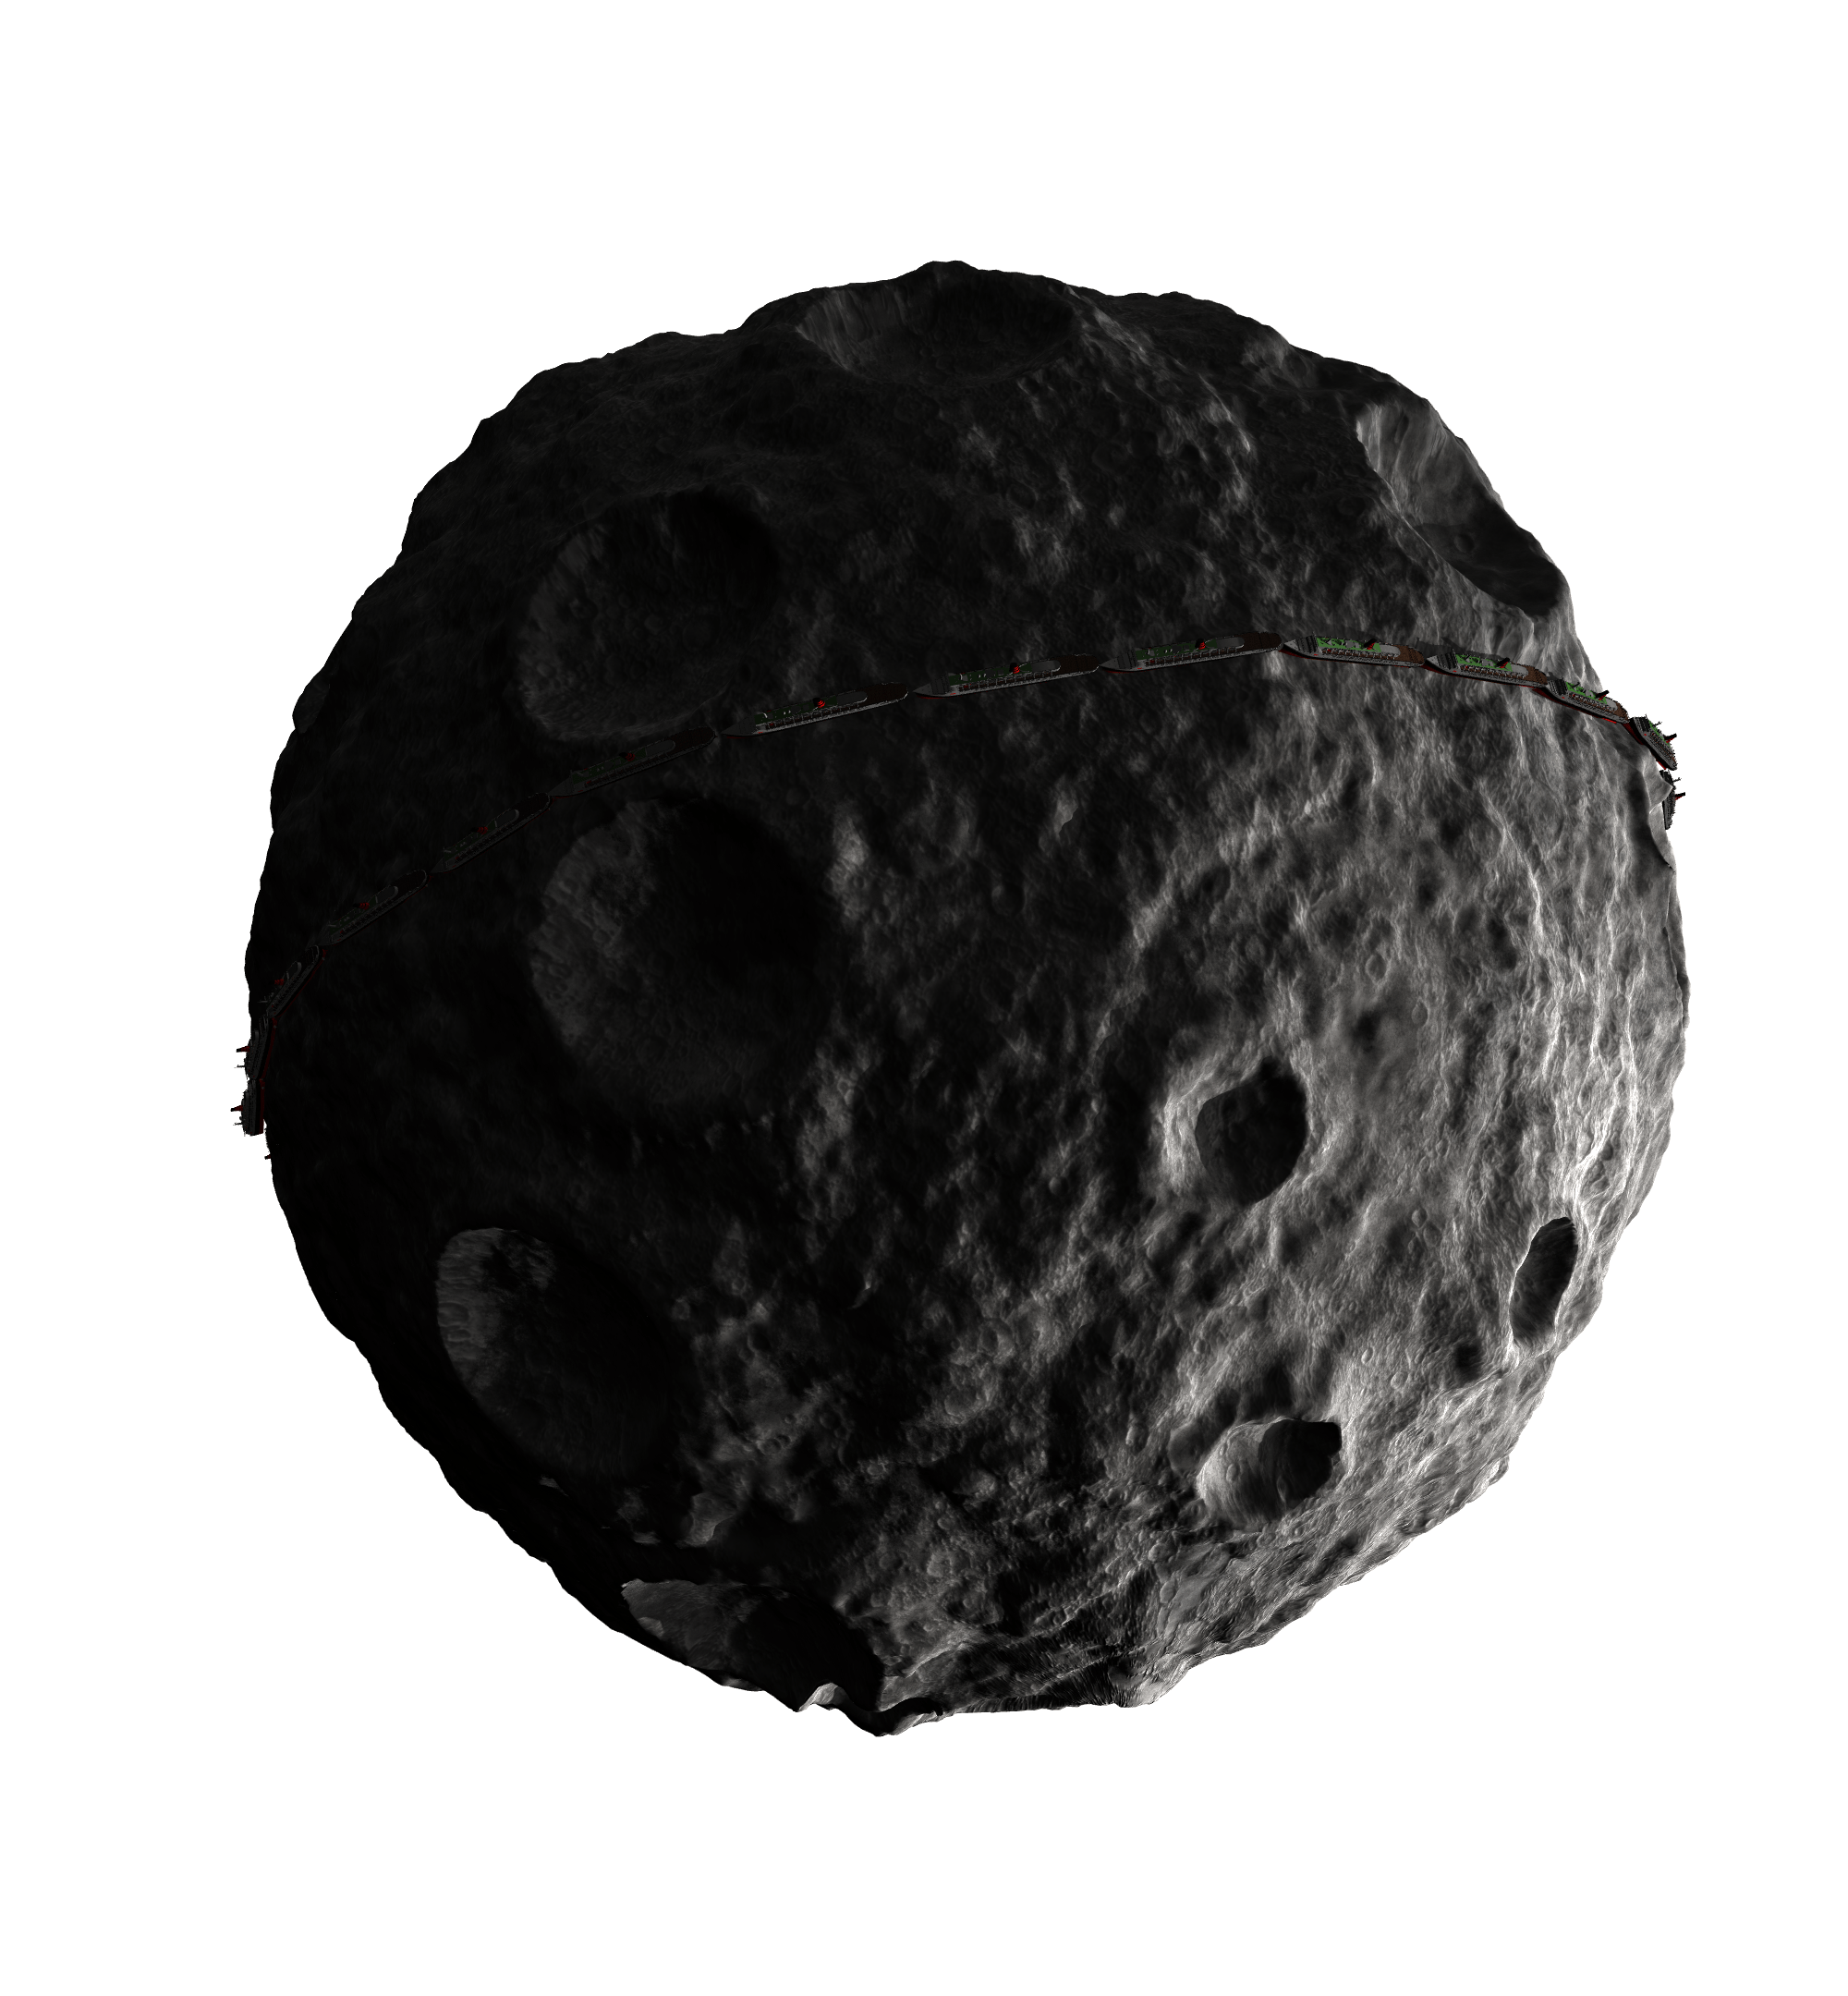 asteroid png pics about space